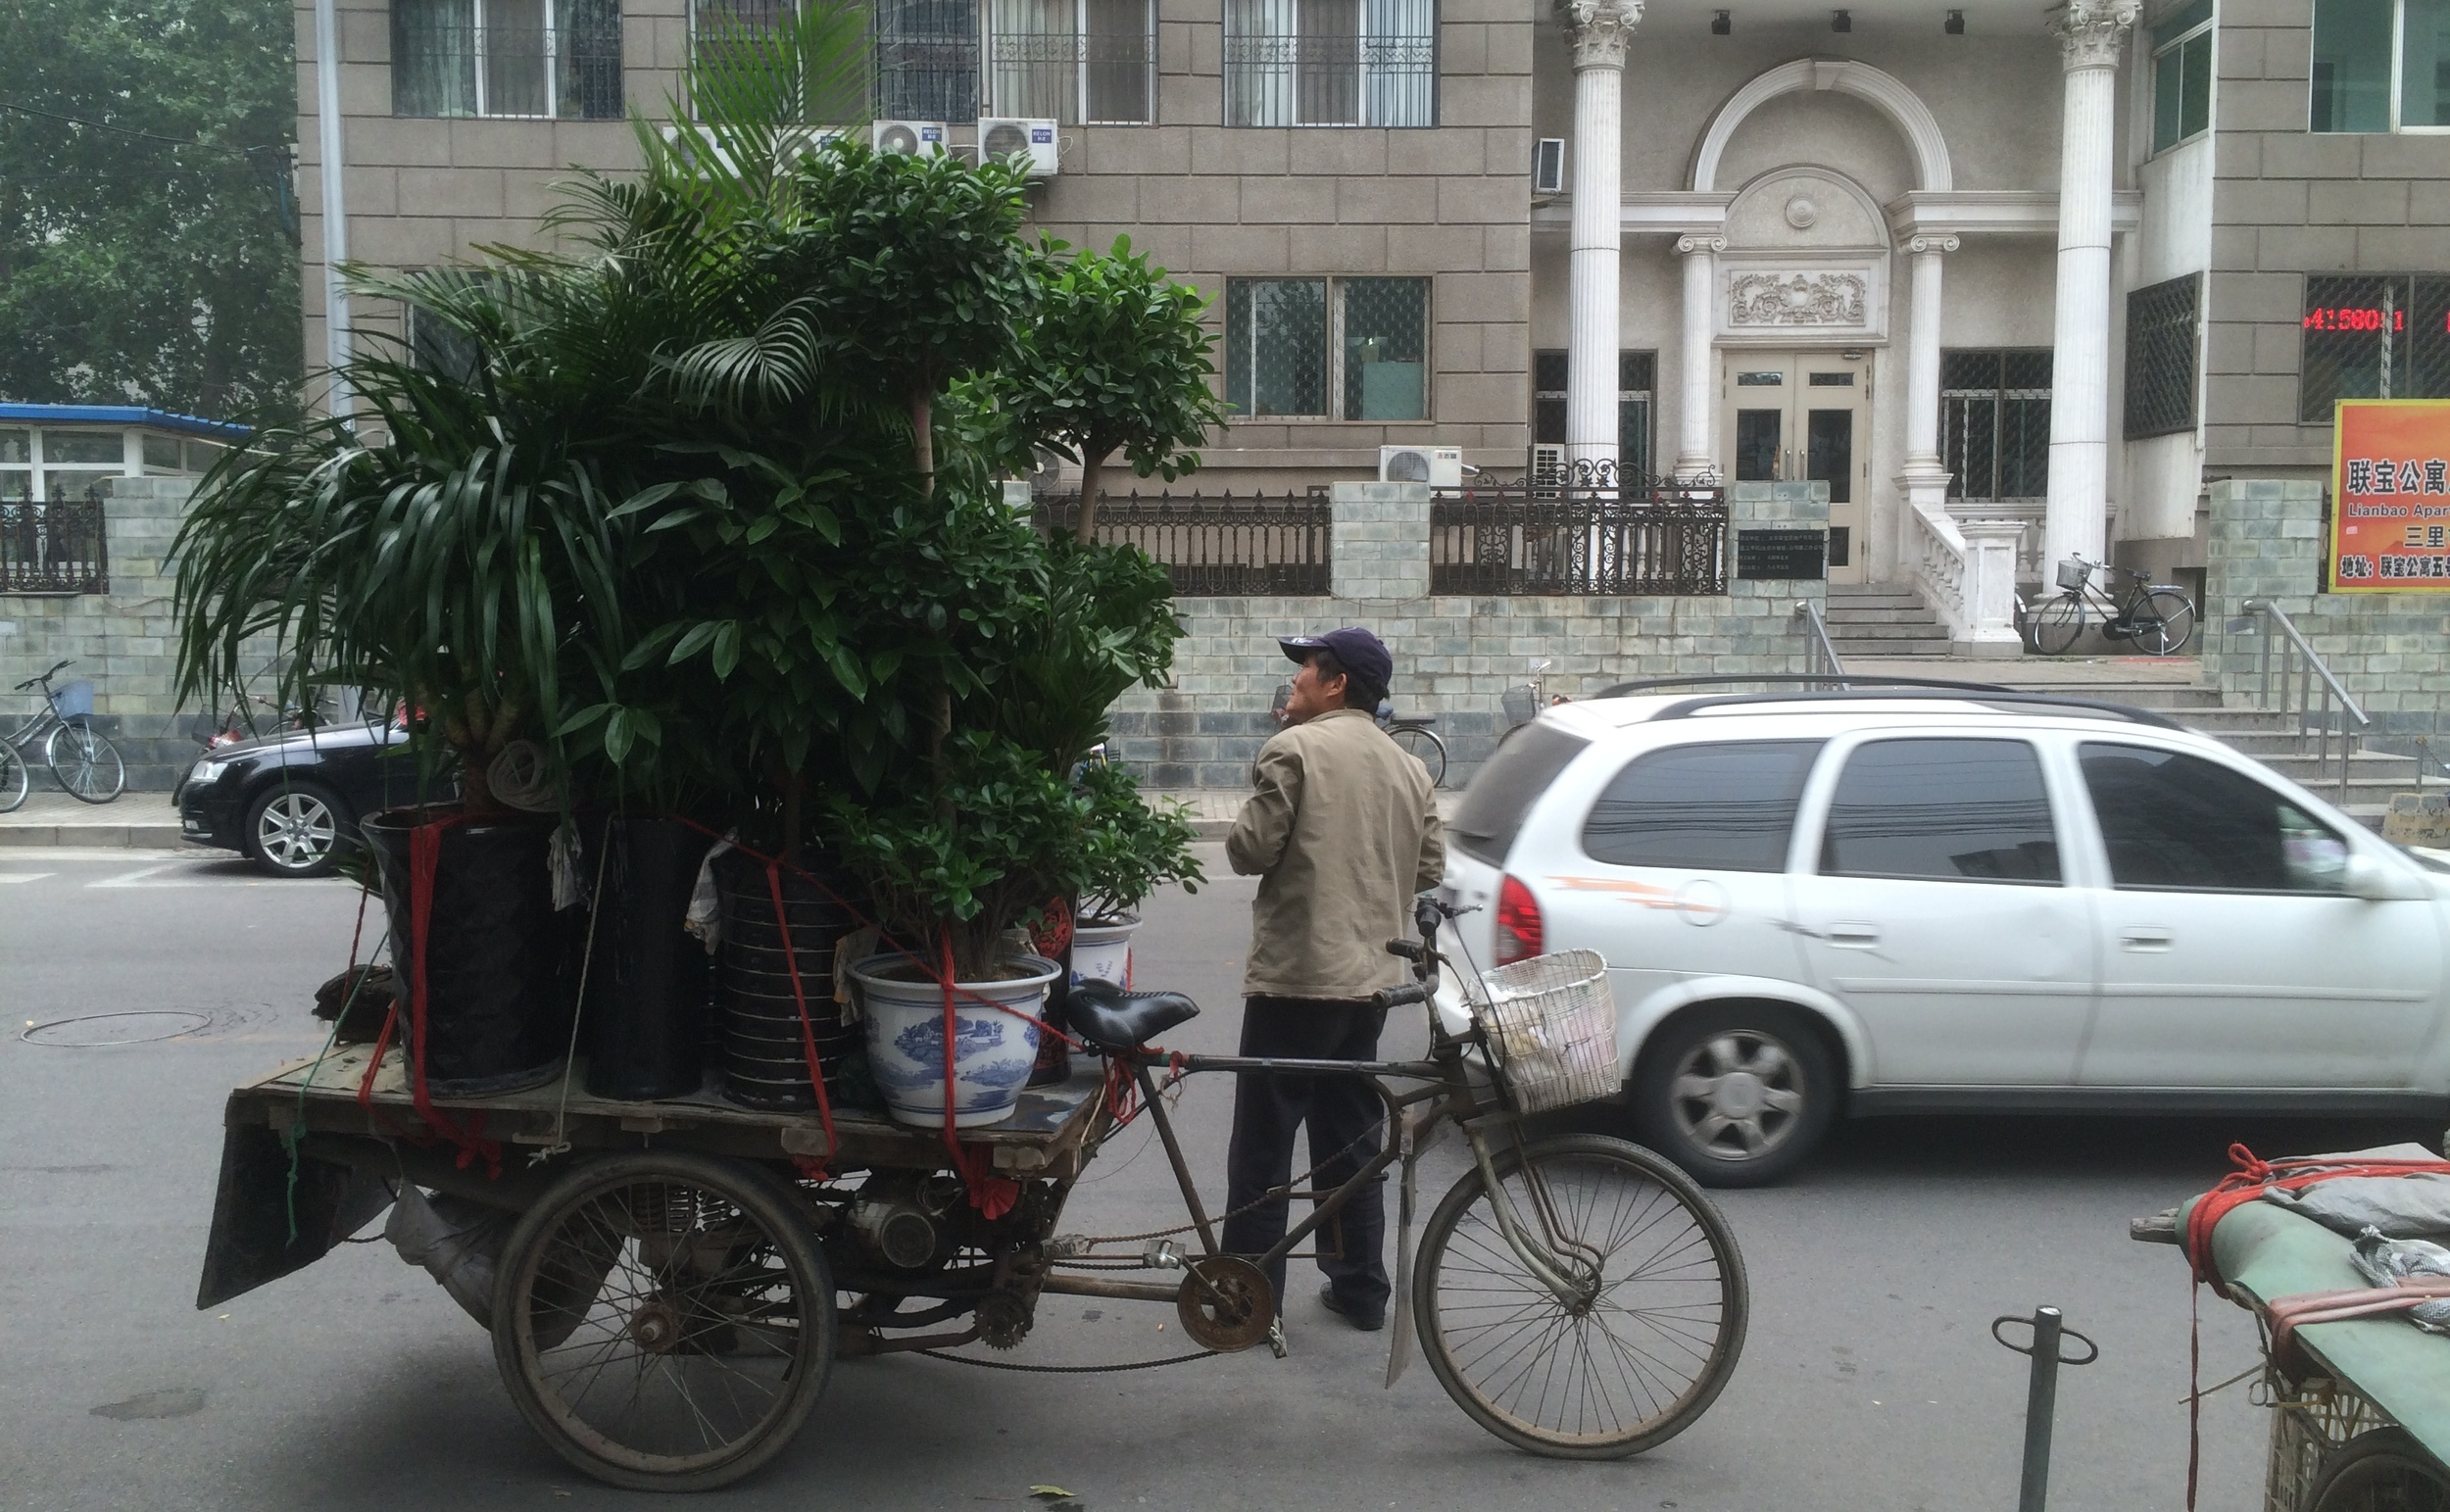 this guy was selling plants...from his bicycle